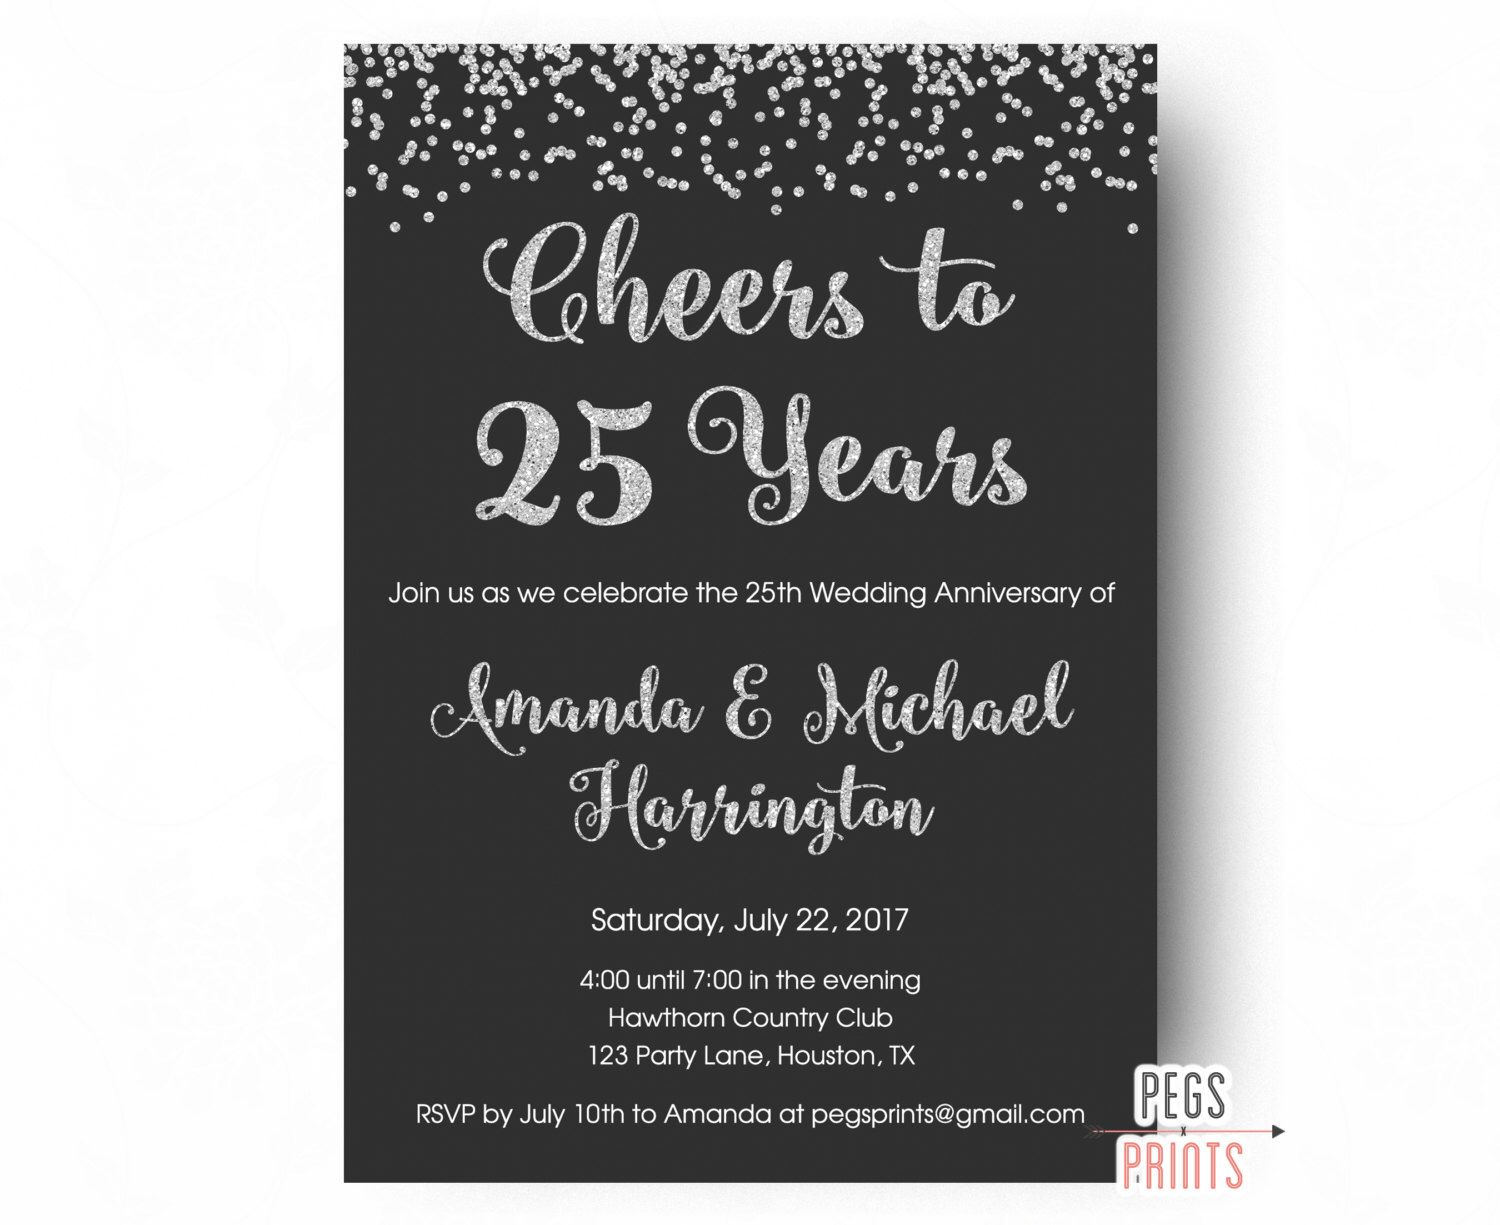 Surprise Wedding Anniversary Invitations: 25th Anniversary Invitations